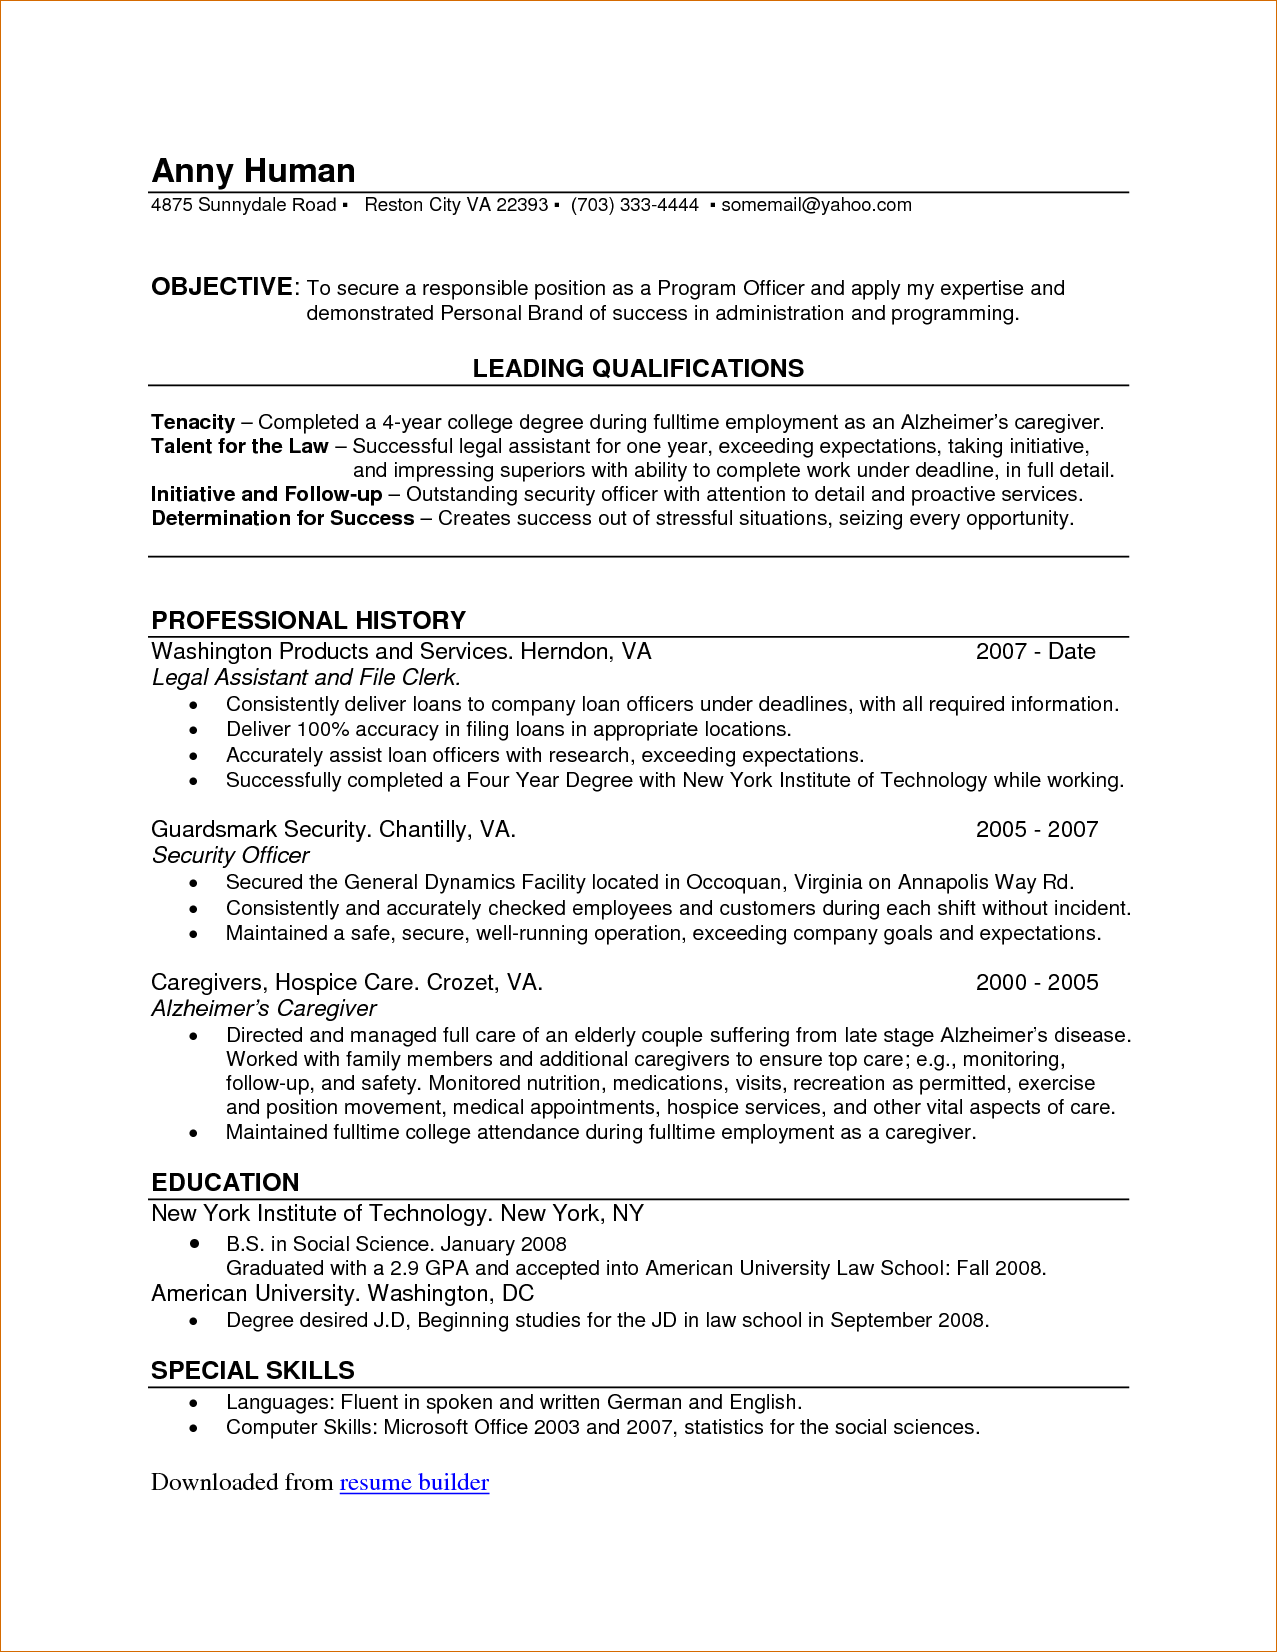 Medical Resume Builder Templates And Examples Healthcare Attorney